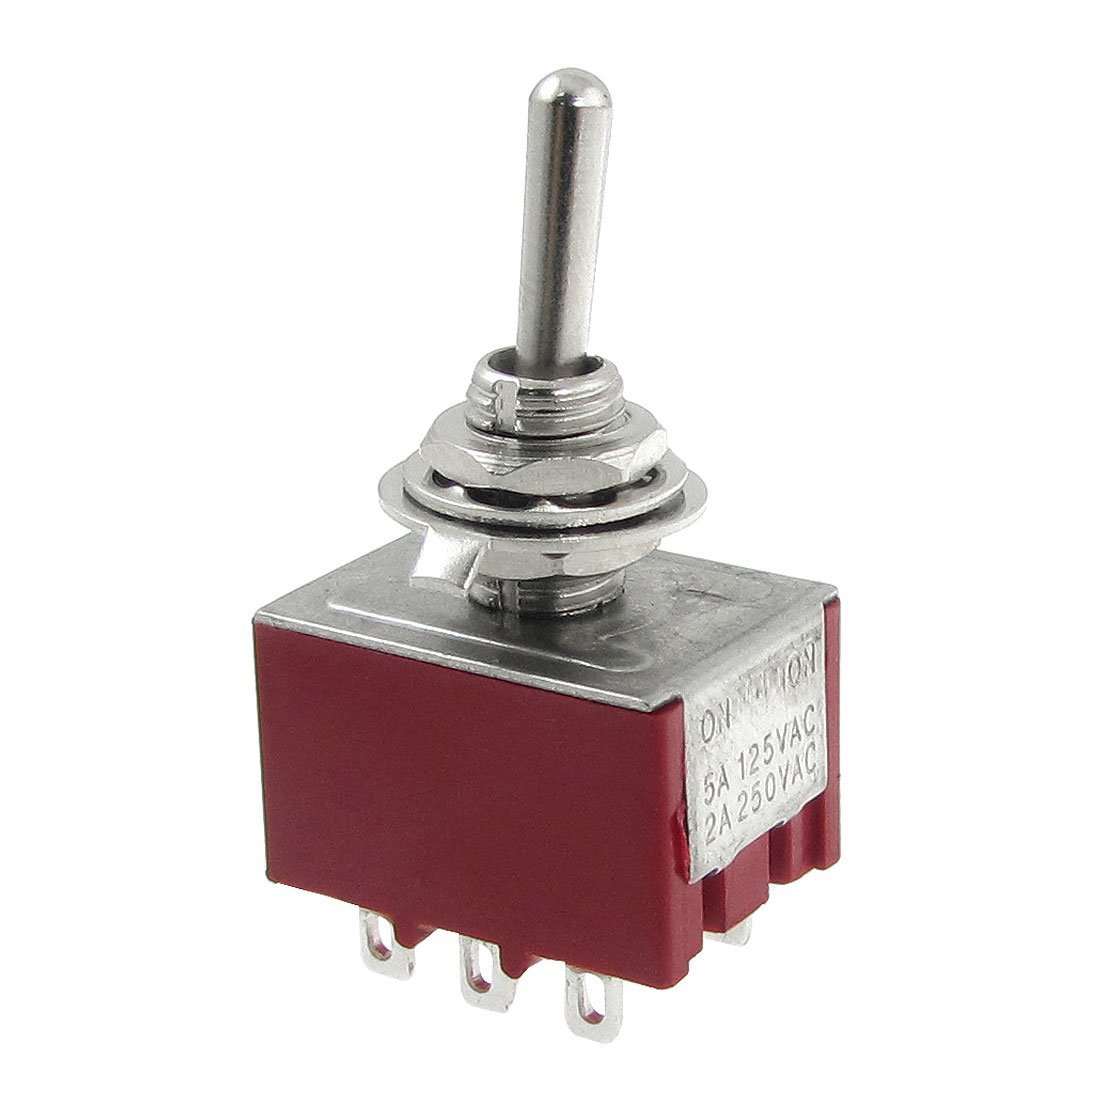 Shopping Time AC 250V 2A 125V 5A ON ON 2 Position 3PDT Toggle Switch